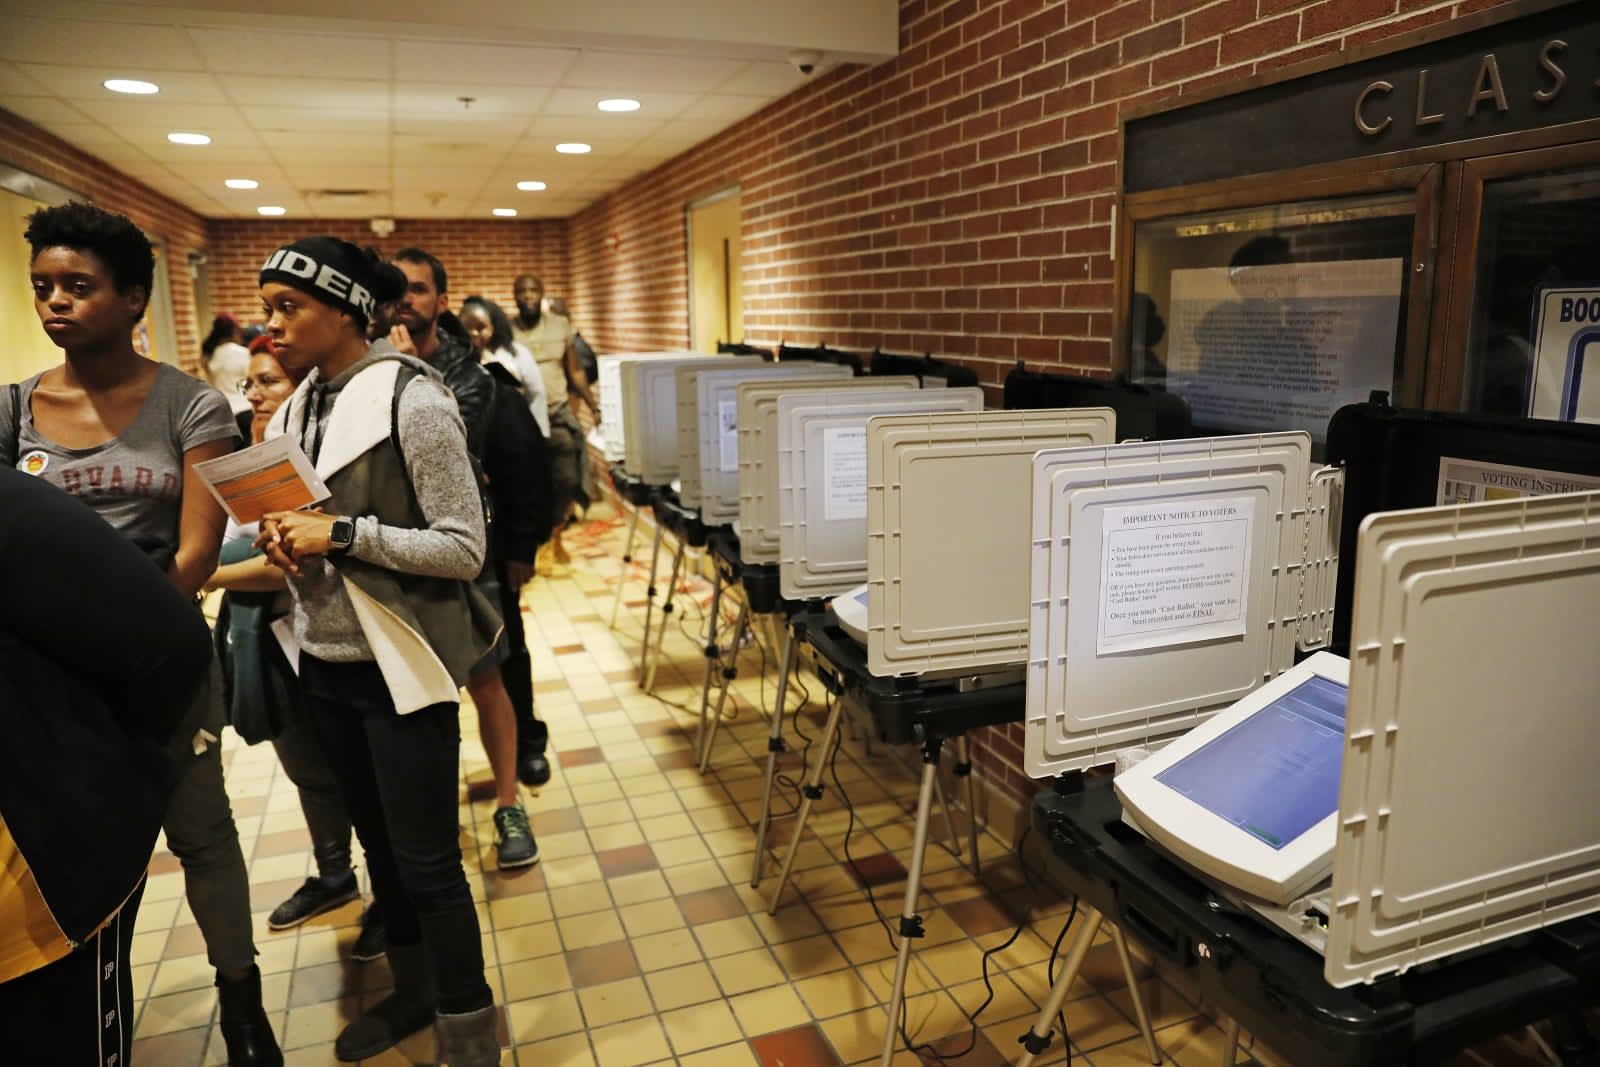 Judge orders Georgia to ditch 'vulnerable' voting machines by 2020